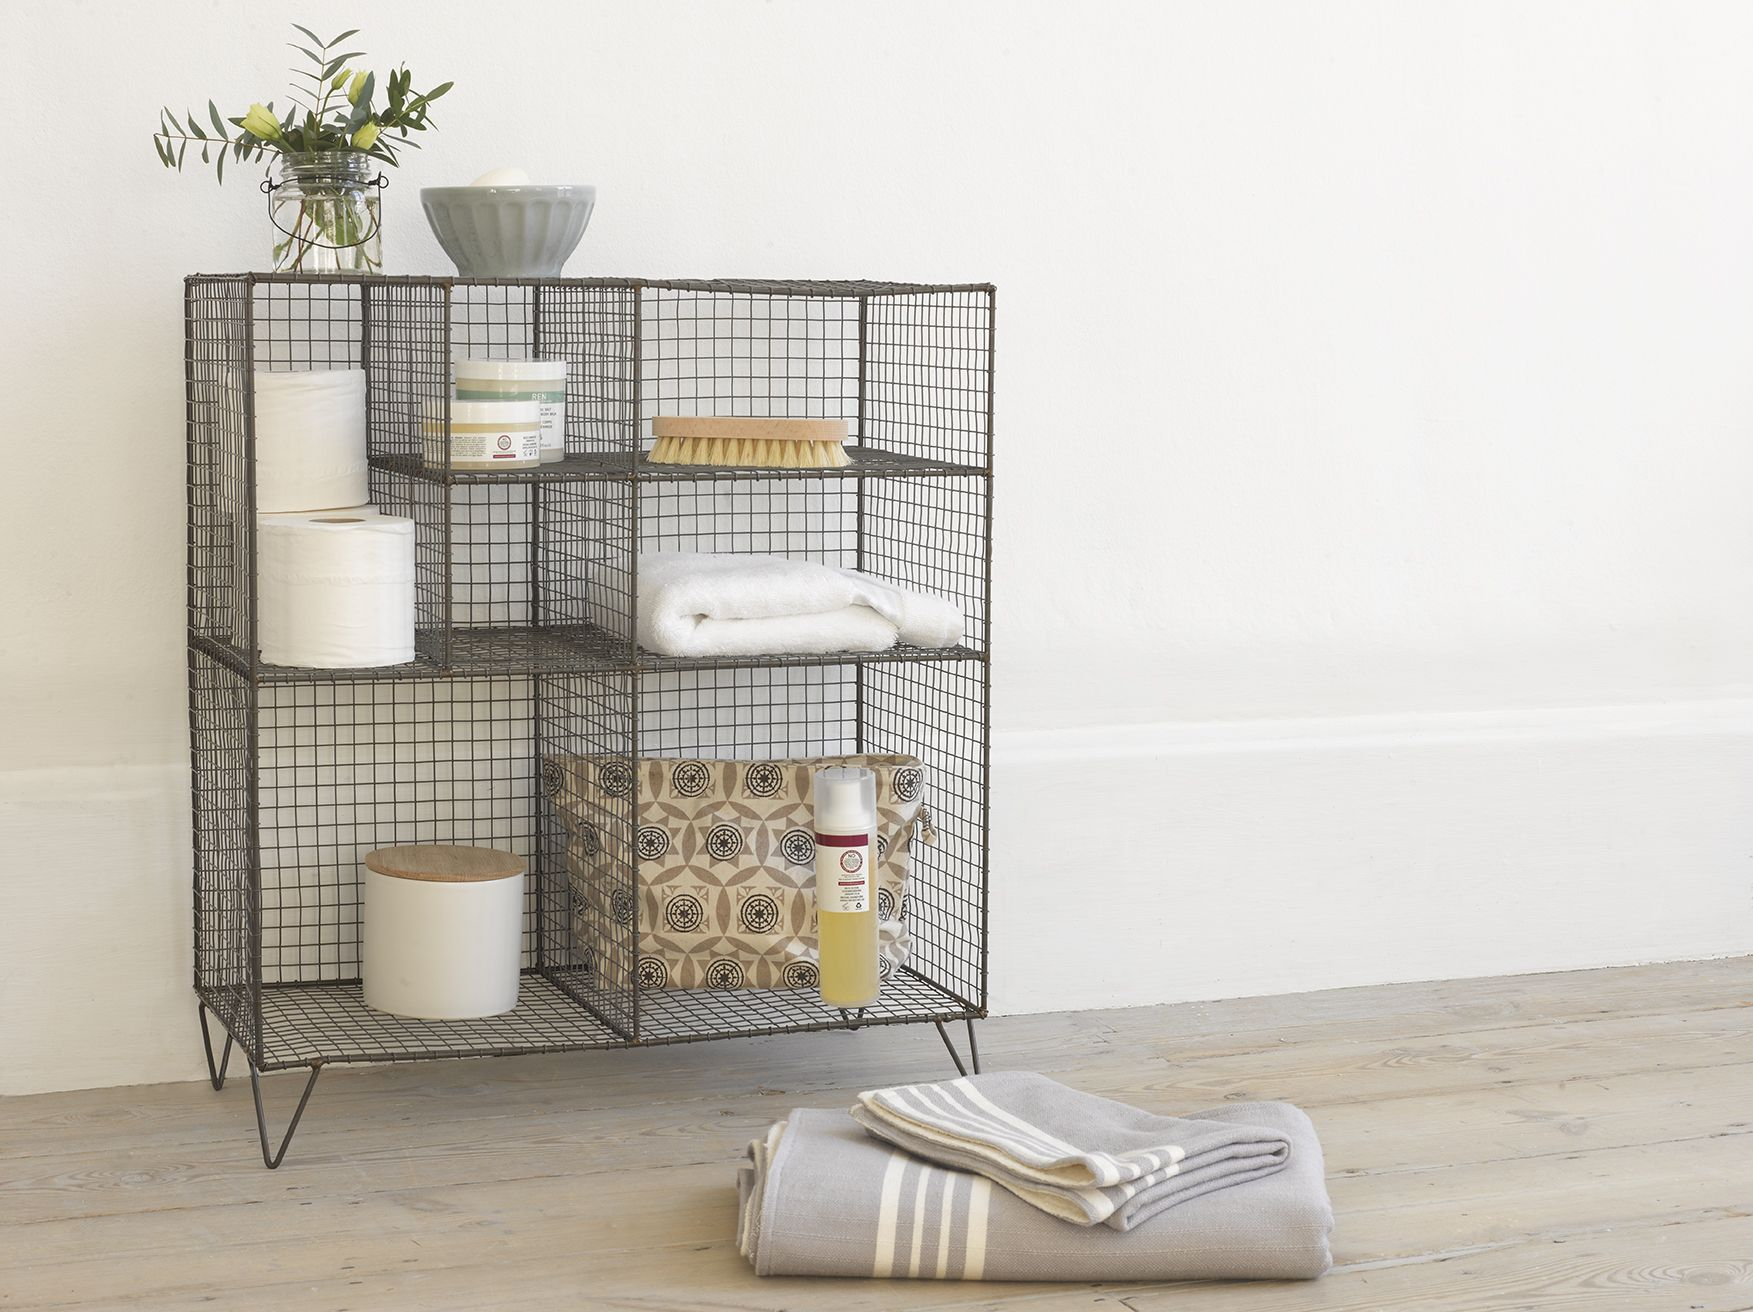 Low Wire Bathroom Towel Storage Towel Storage And Bathroom Towels - Towel storage solutions for small bathroom ideas